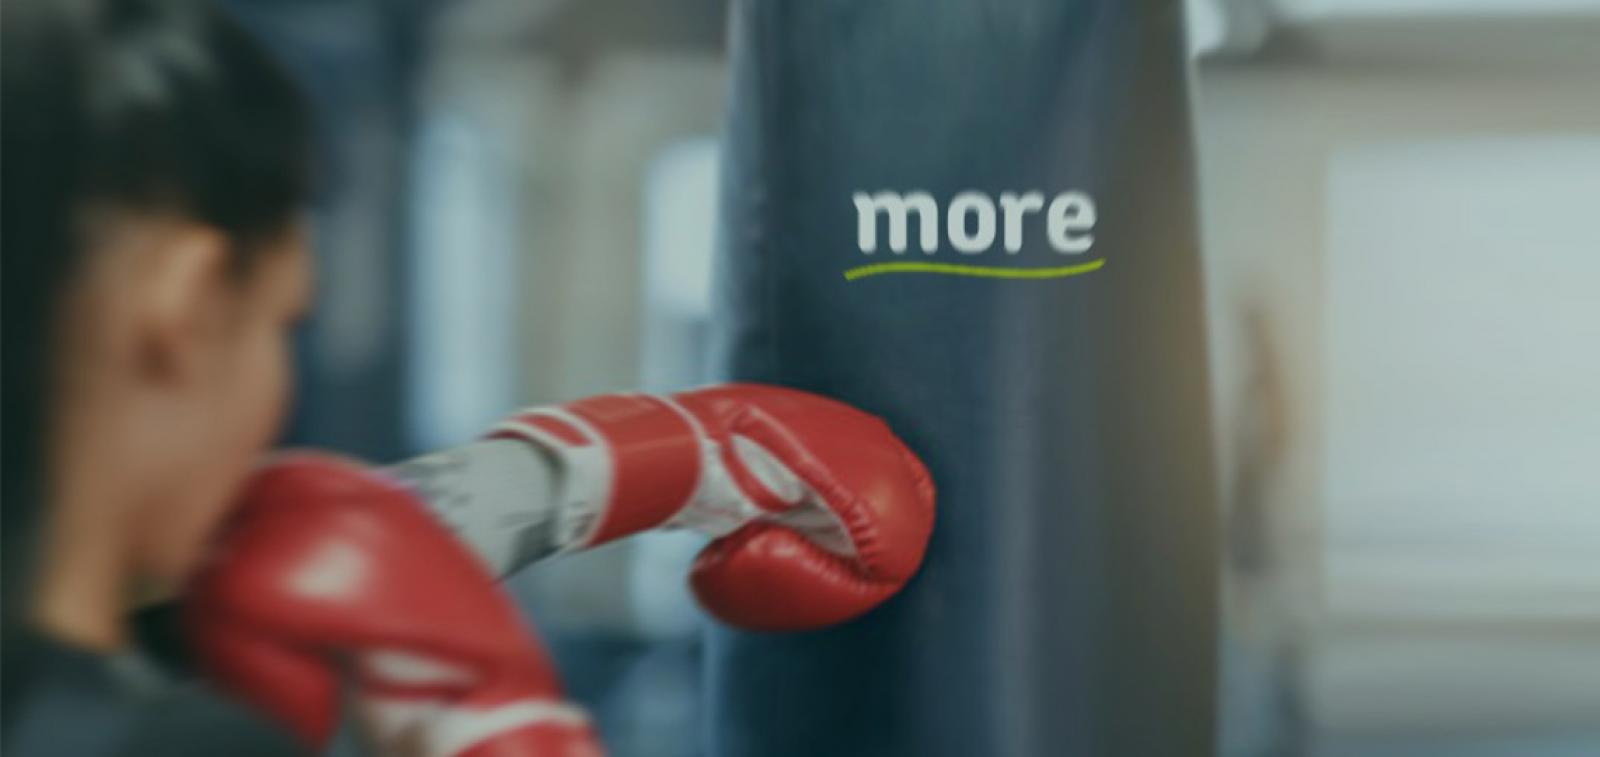 Woman wearing boxing gloved punching a black punching bag with the Sanctuary Homes MORE! logo on